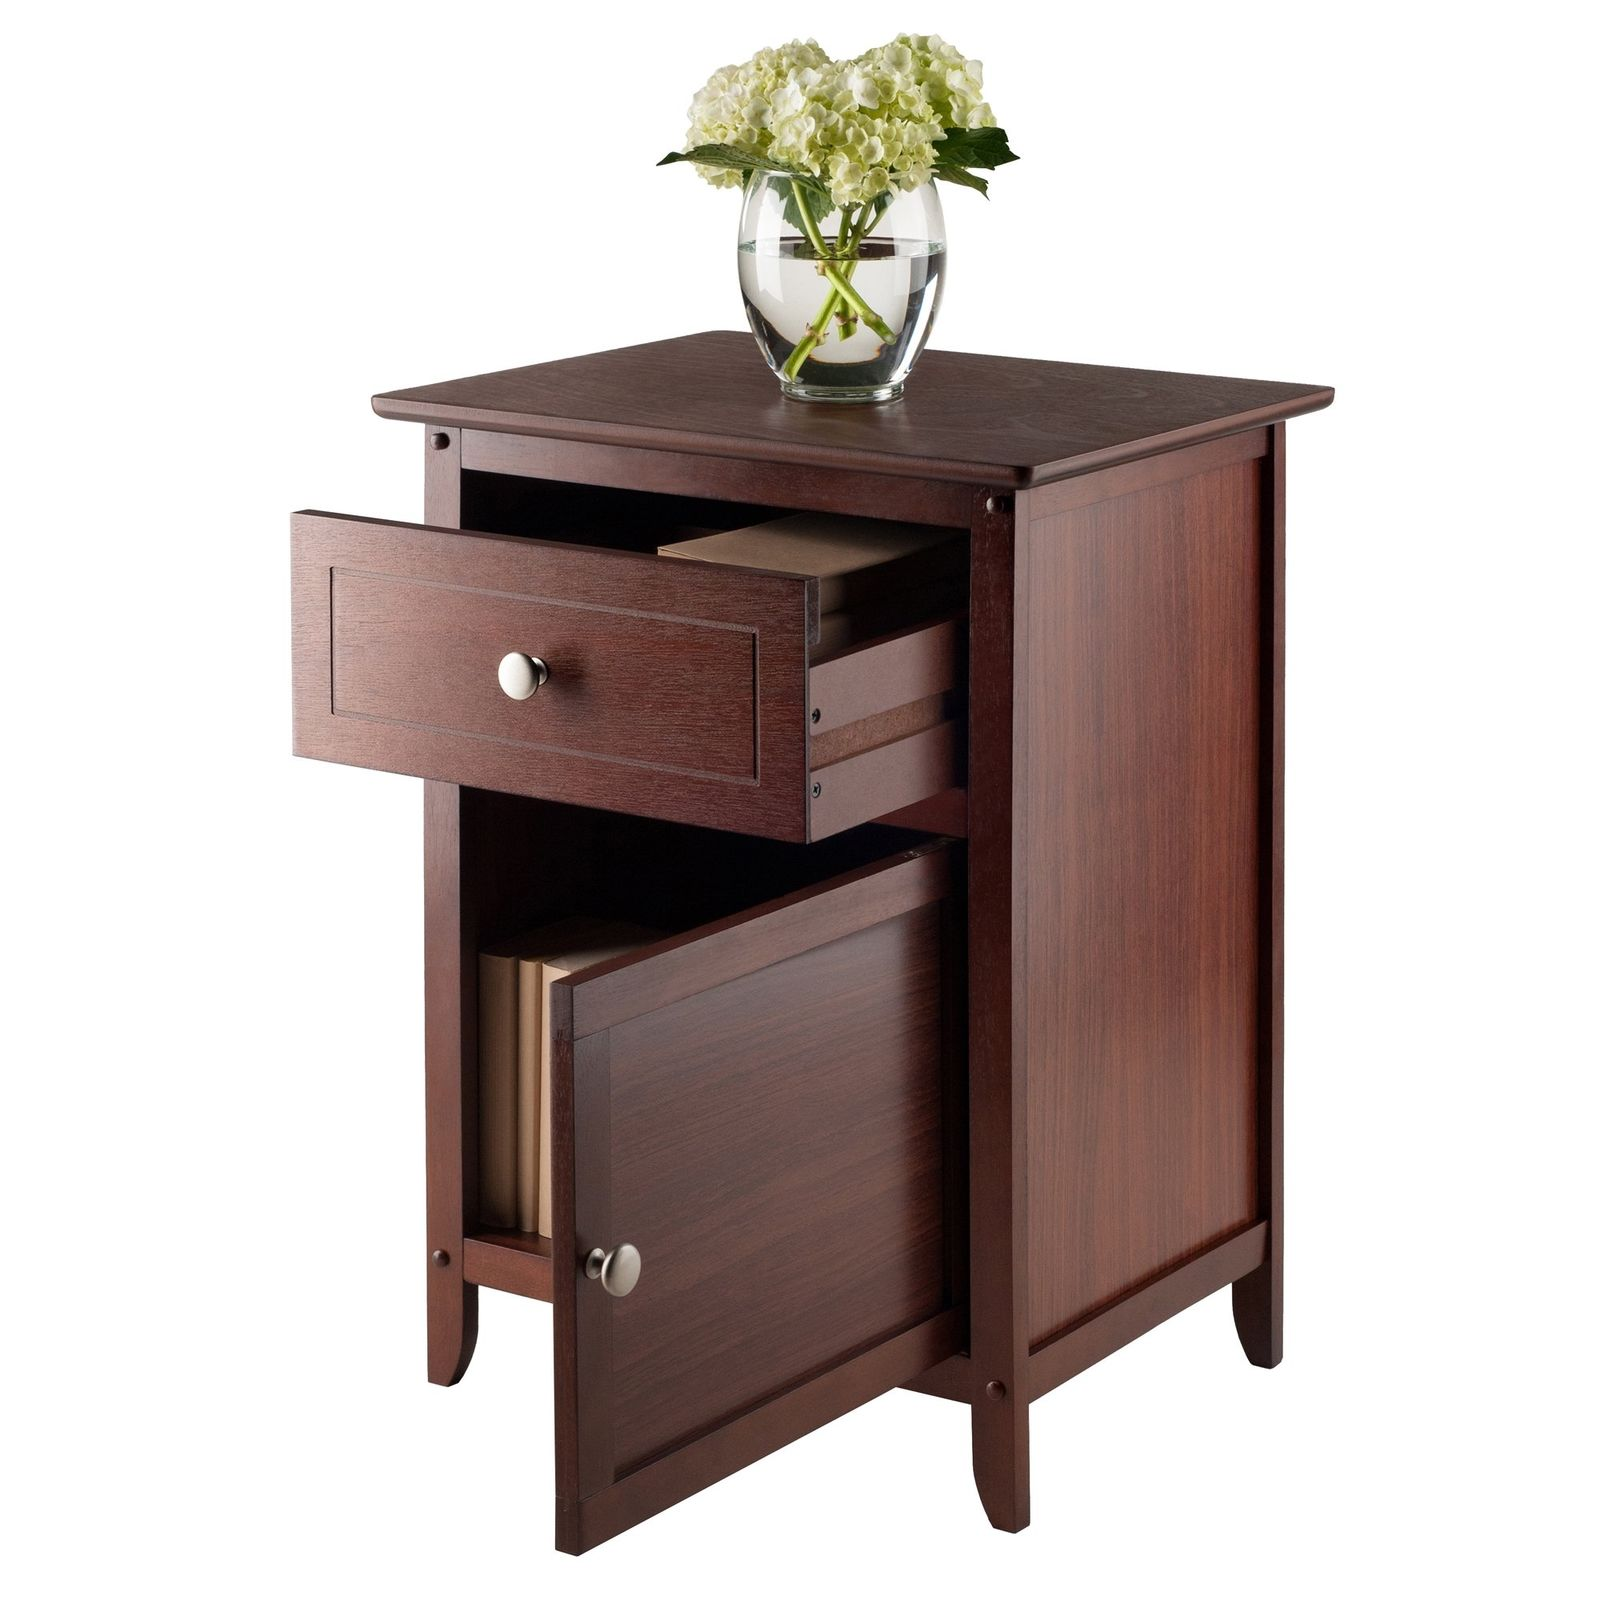 winsome classic eugene accent table brown white decorative with drawers and metal coffee round kitchen furnishing small spaces target curtain rods ideas for shabby chic dresser